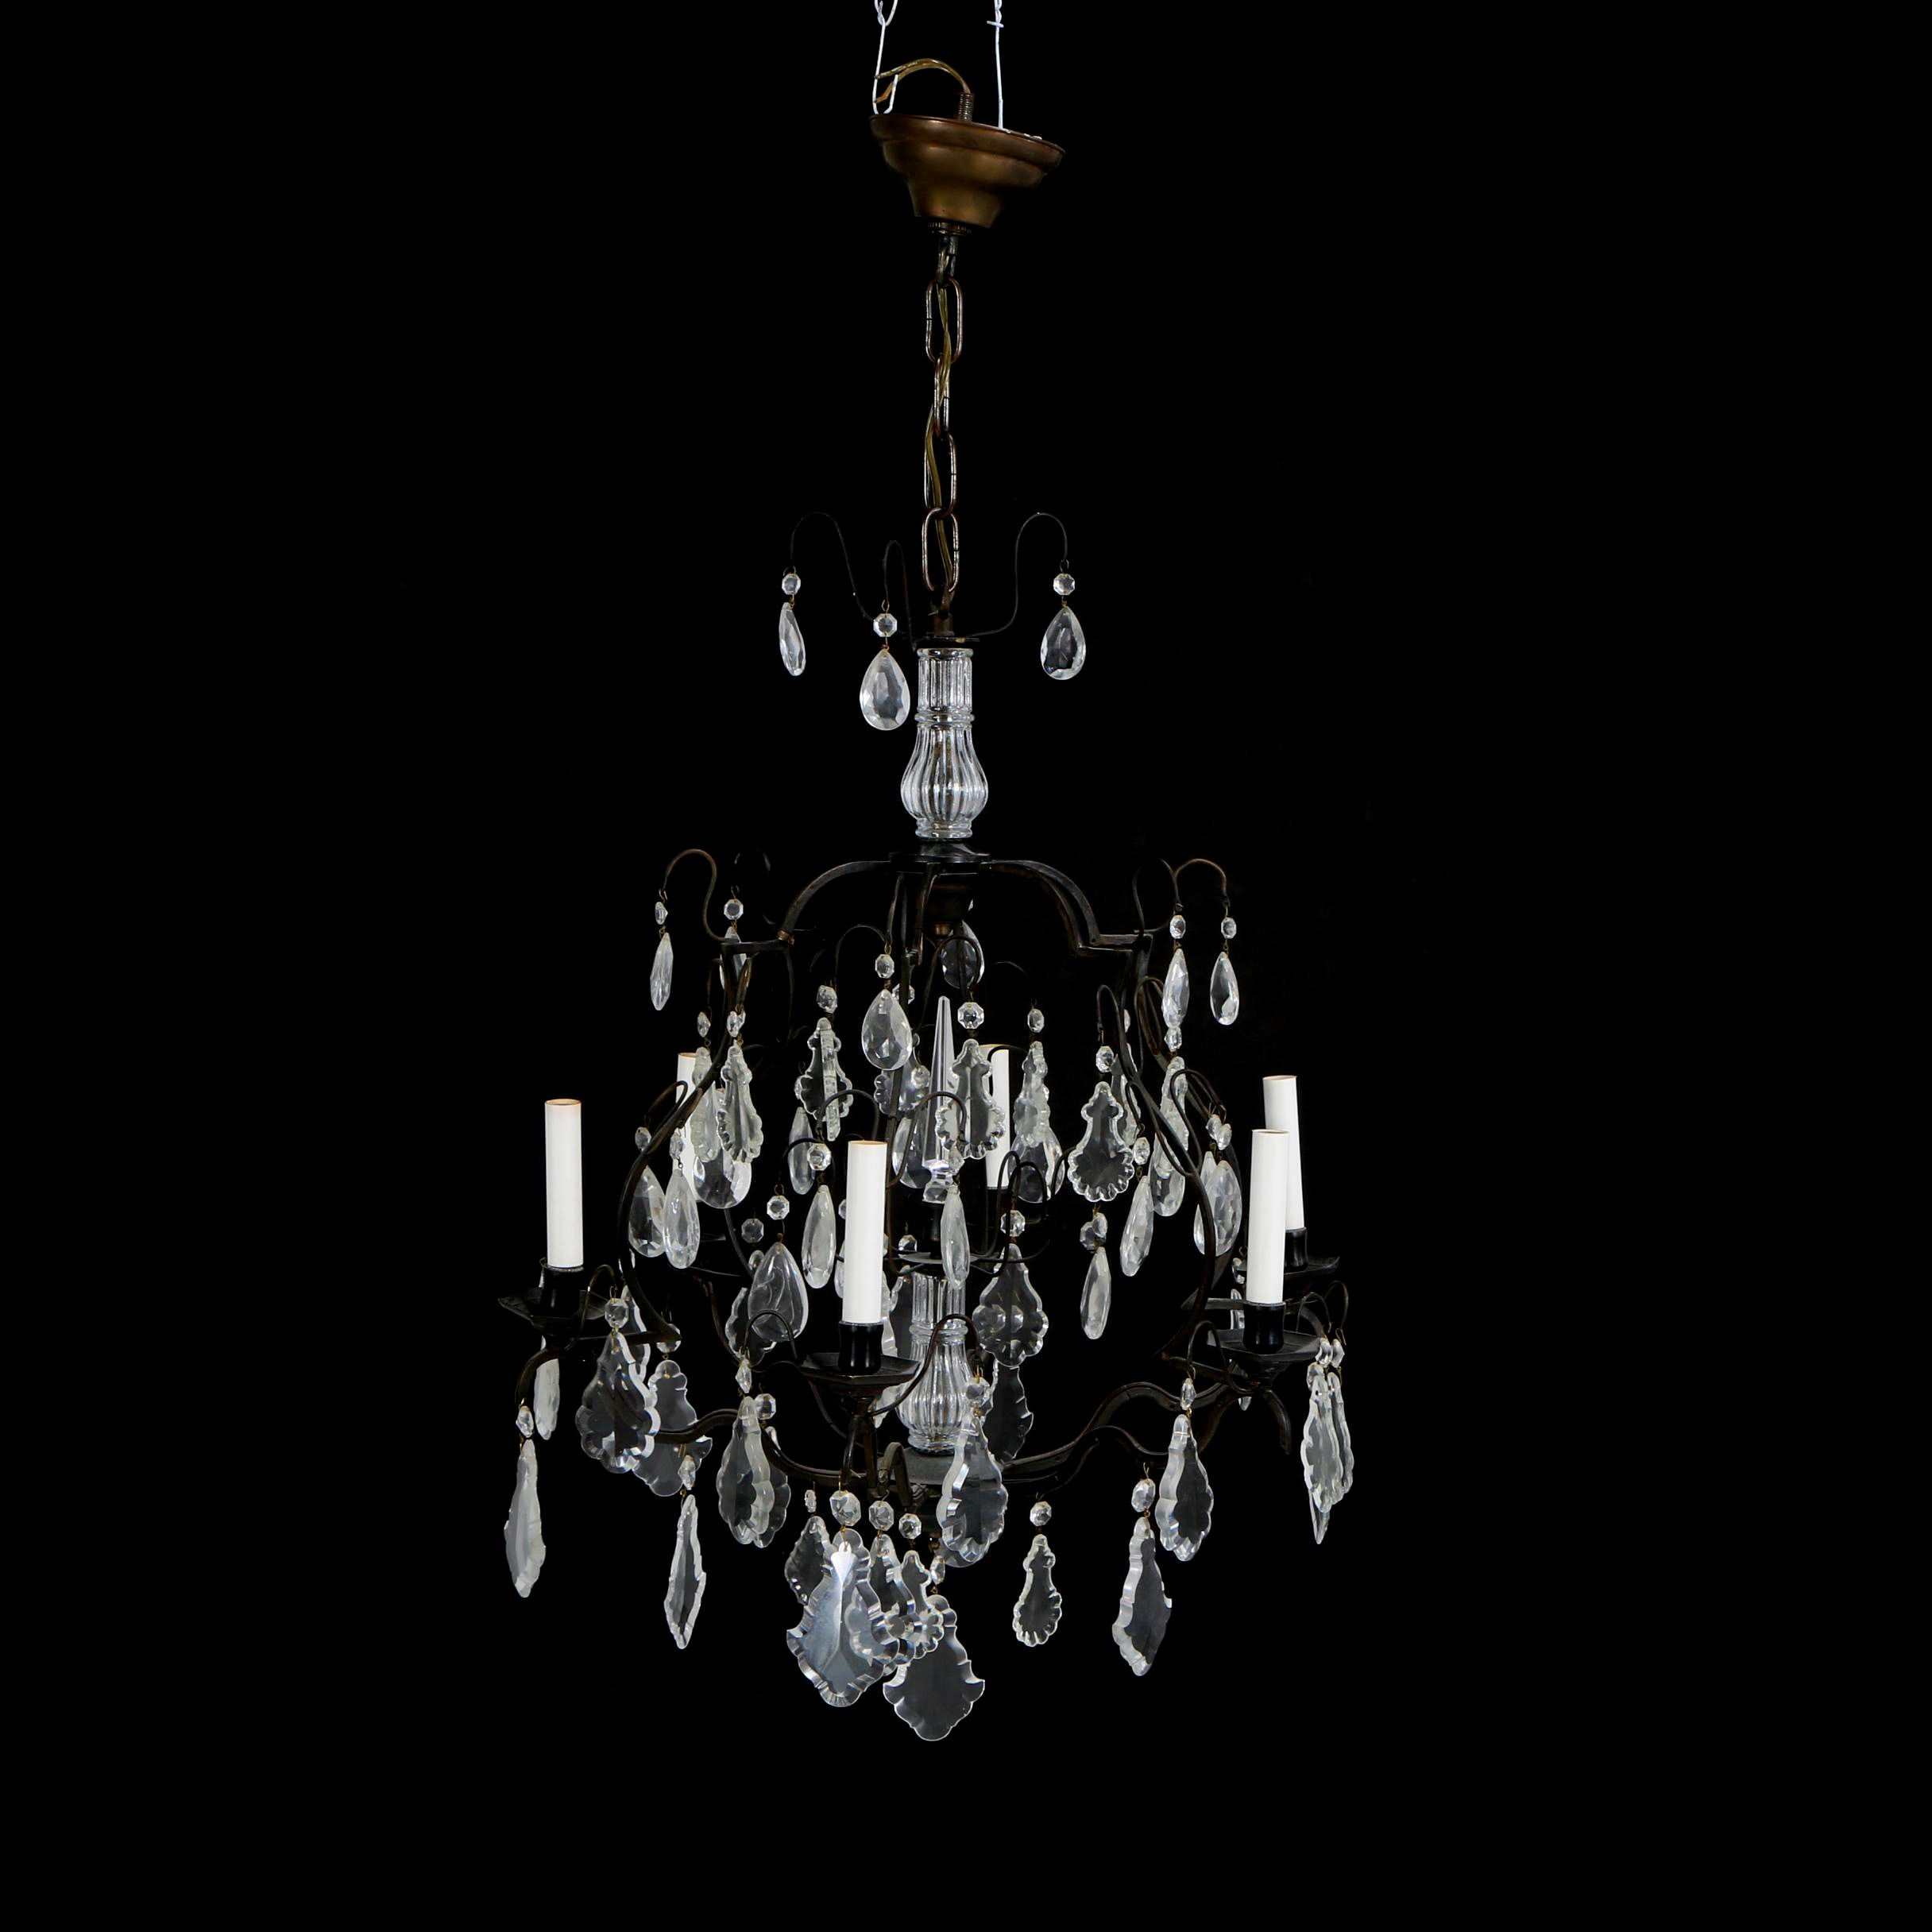 Venetian Style Bronze Toned Metal and Glass Chandelier with Prisms